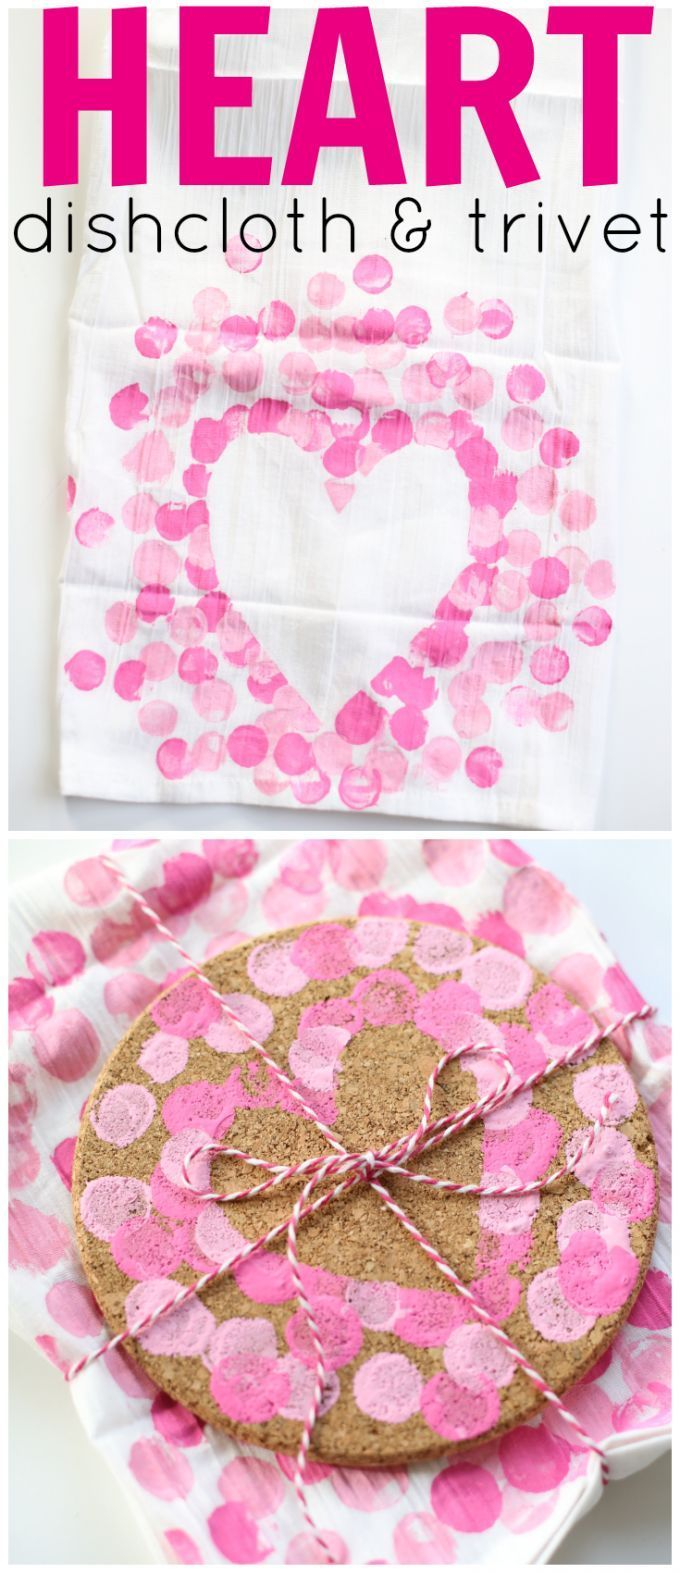 Heart Dishcloth and Matching Trivet:  Such a sweet and simple gift idea that kids can make!